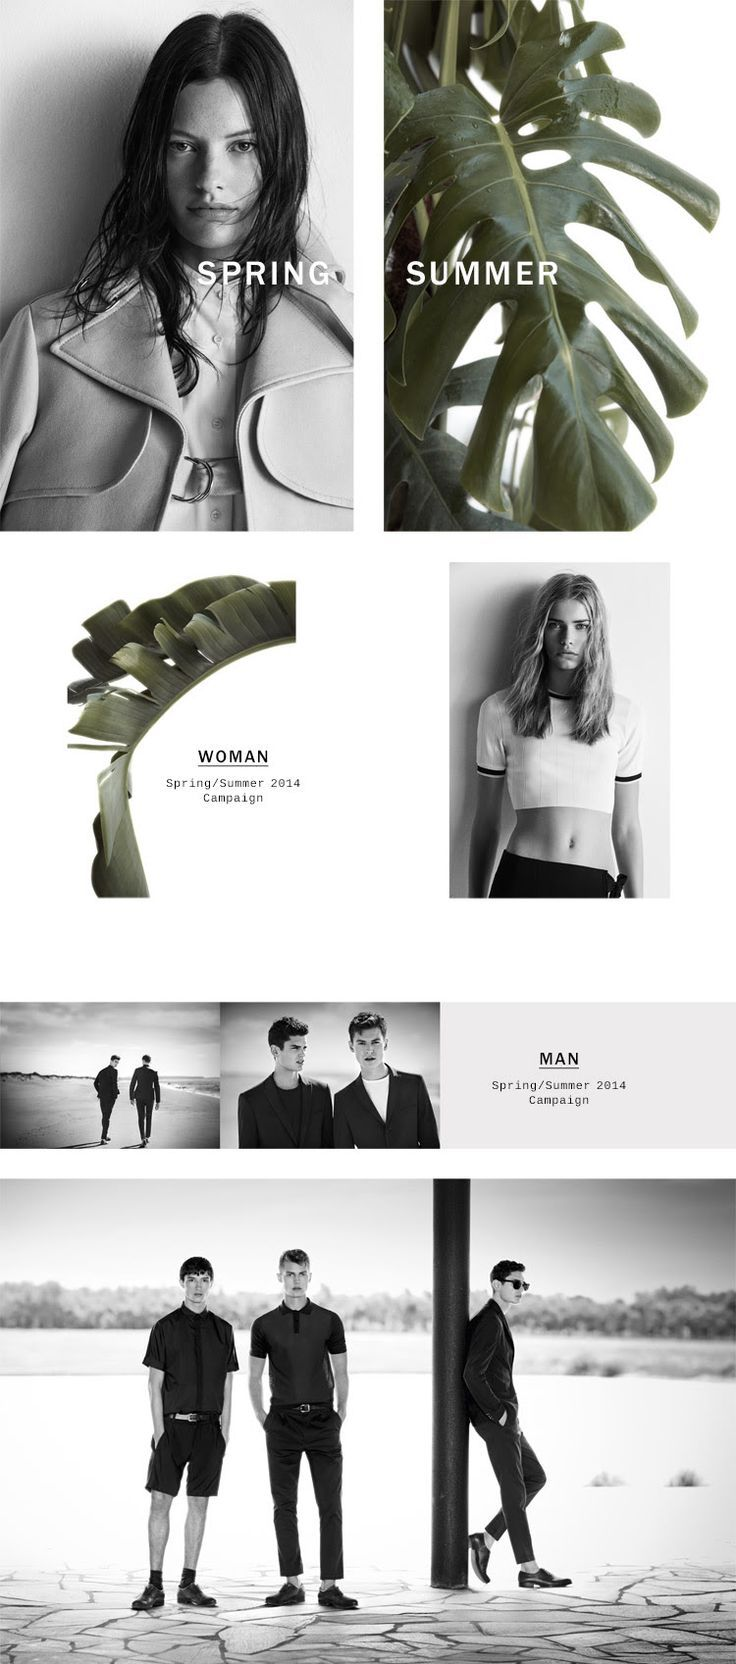 Zara S/S 2014 campaign, graphics design, photography, branding.